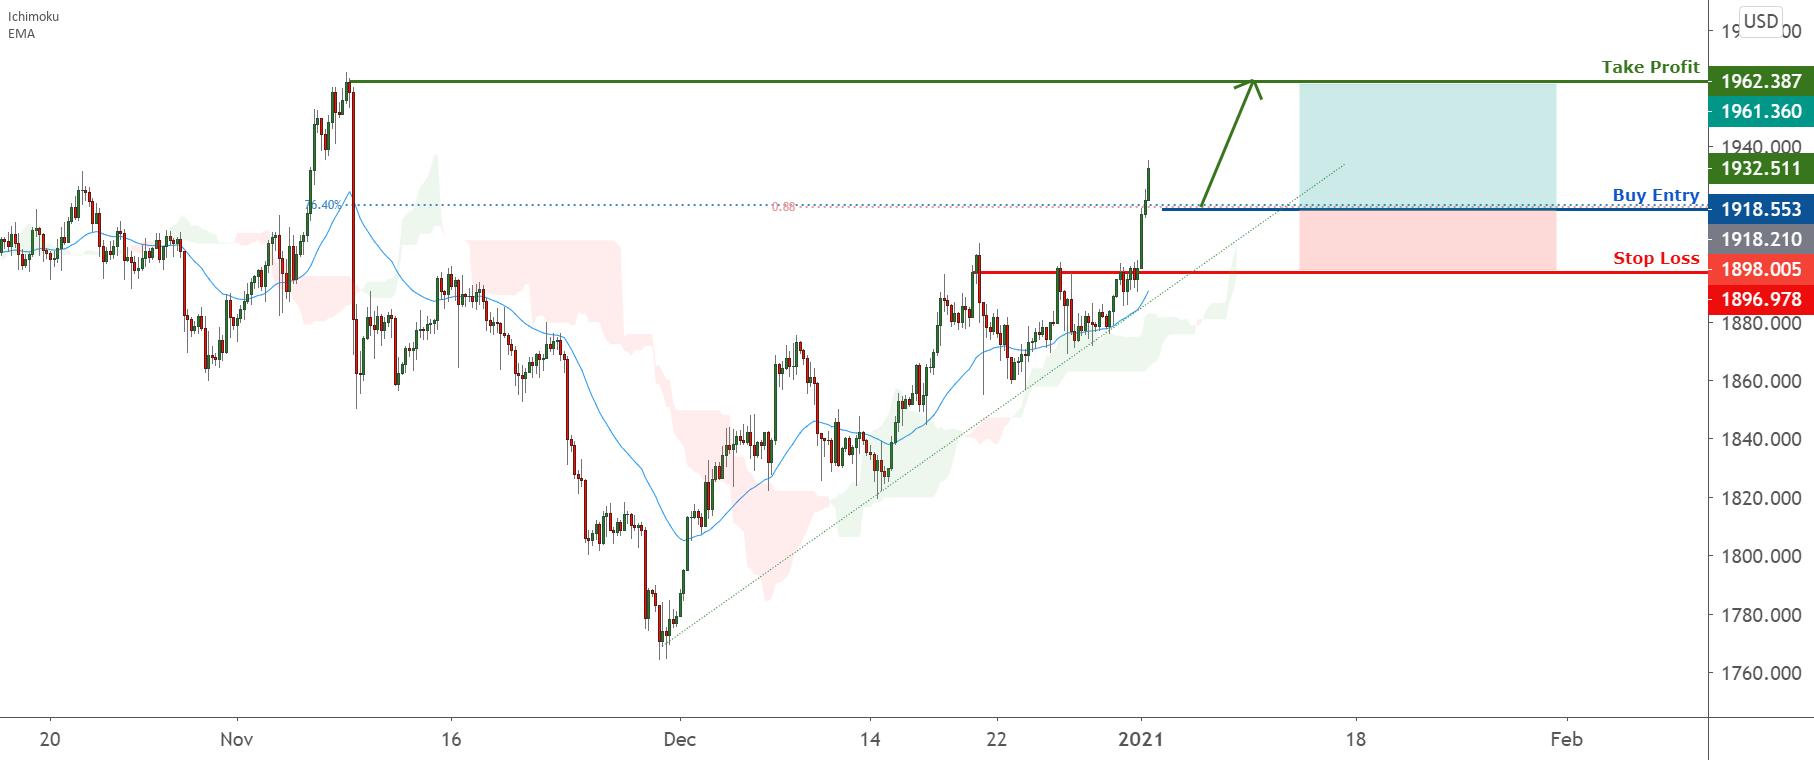 XAUUSD could bounce further towards 1962! for OANDA:XAUUSD by FXCM